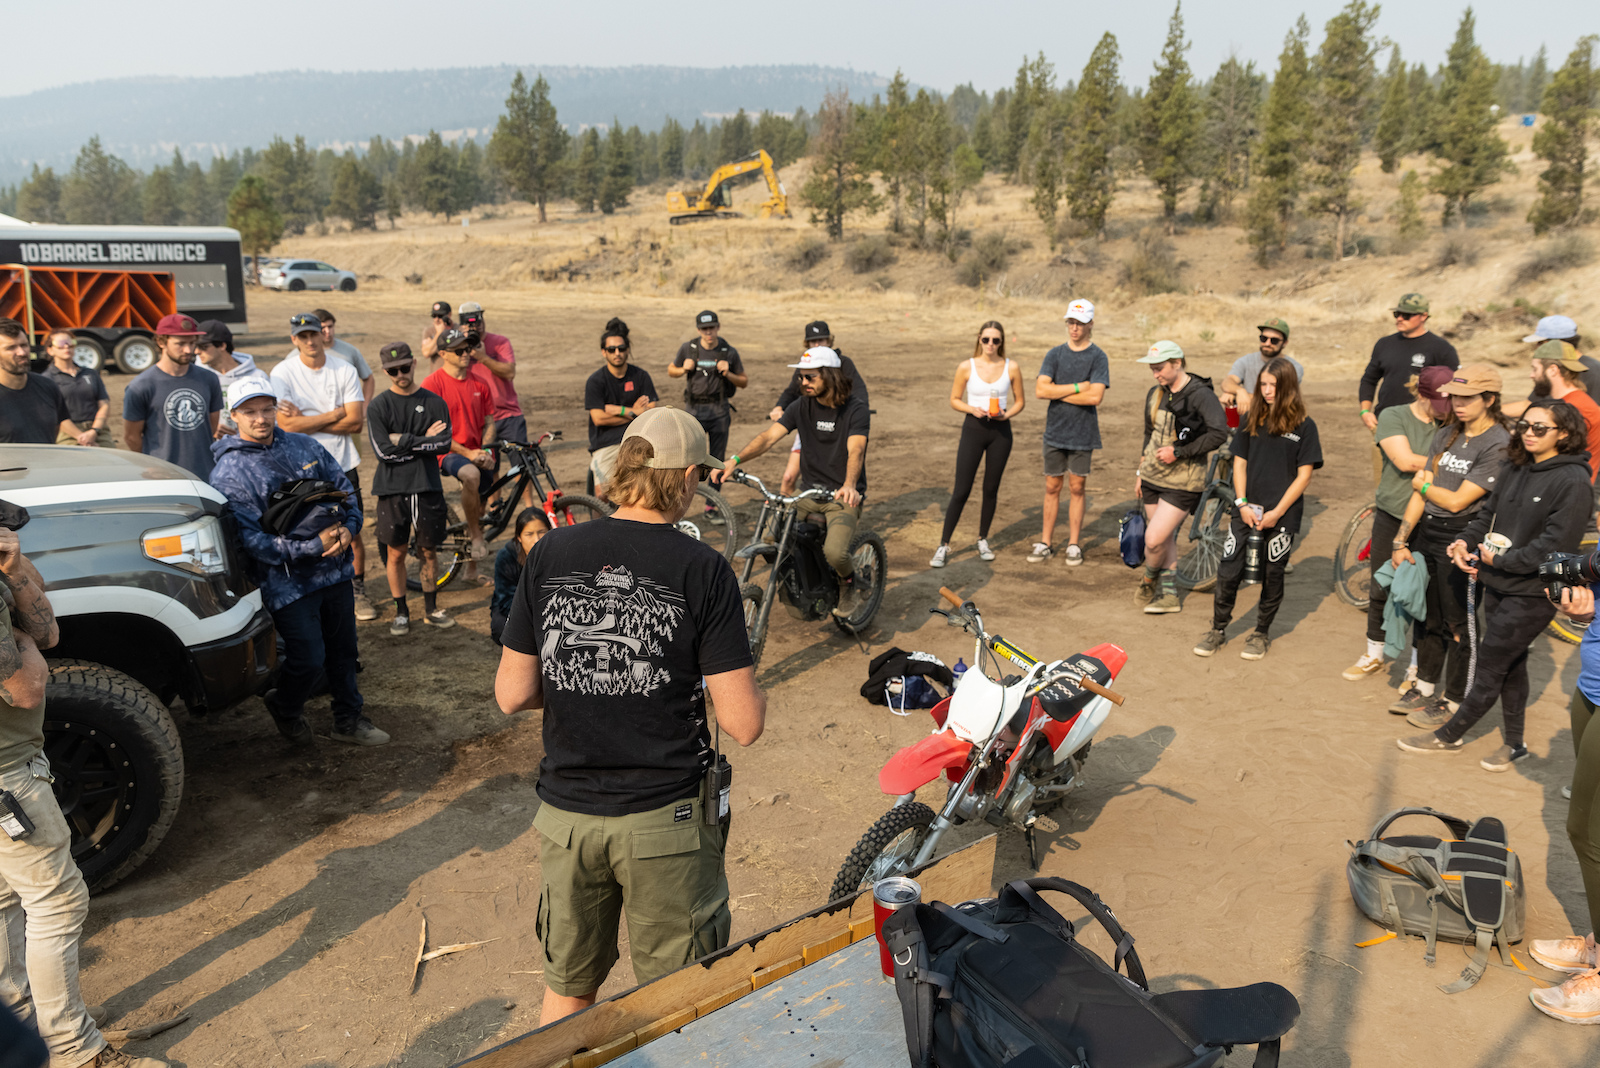 Riders meeting - Johnny pay attention and stop looking at E-Boy s new shoes.